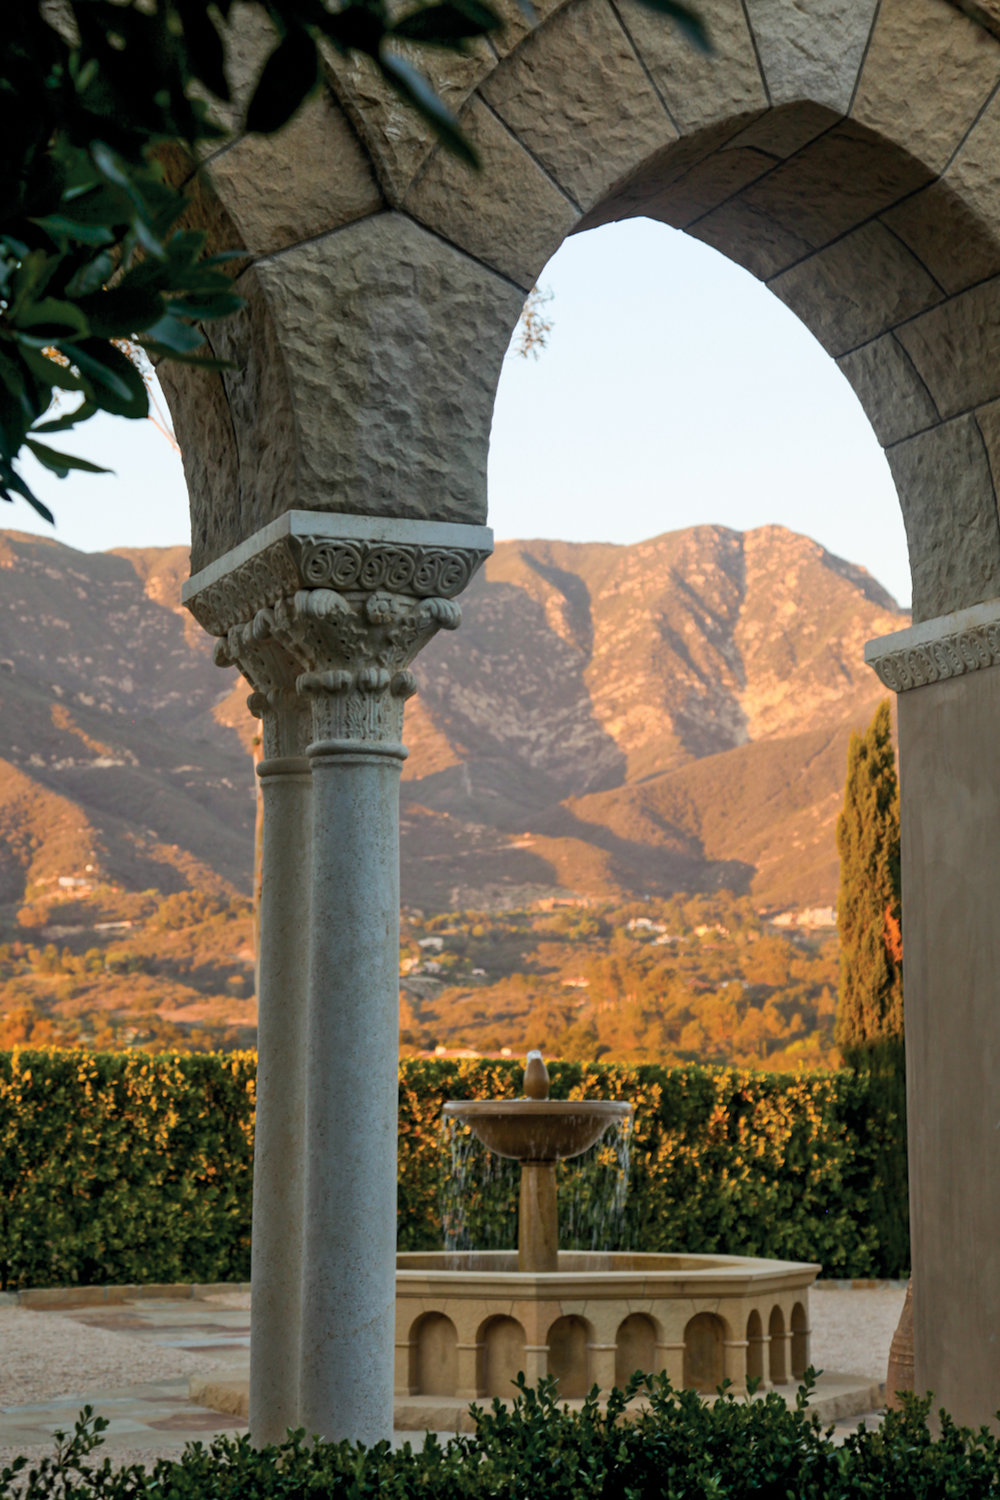 12_pc_US_DeRose_3587-6CMYK-12.jpg